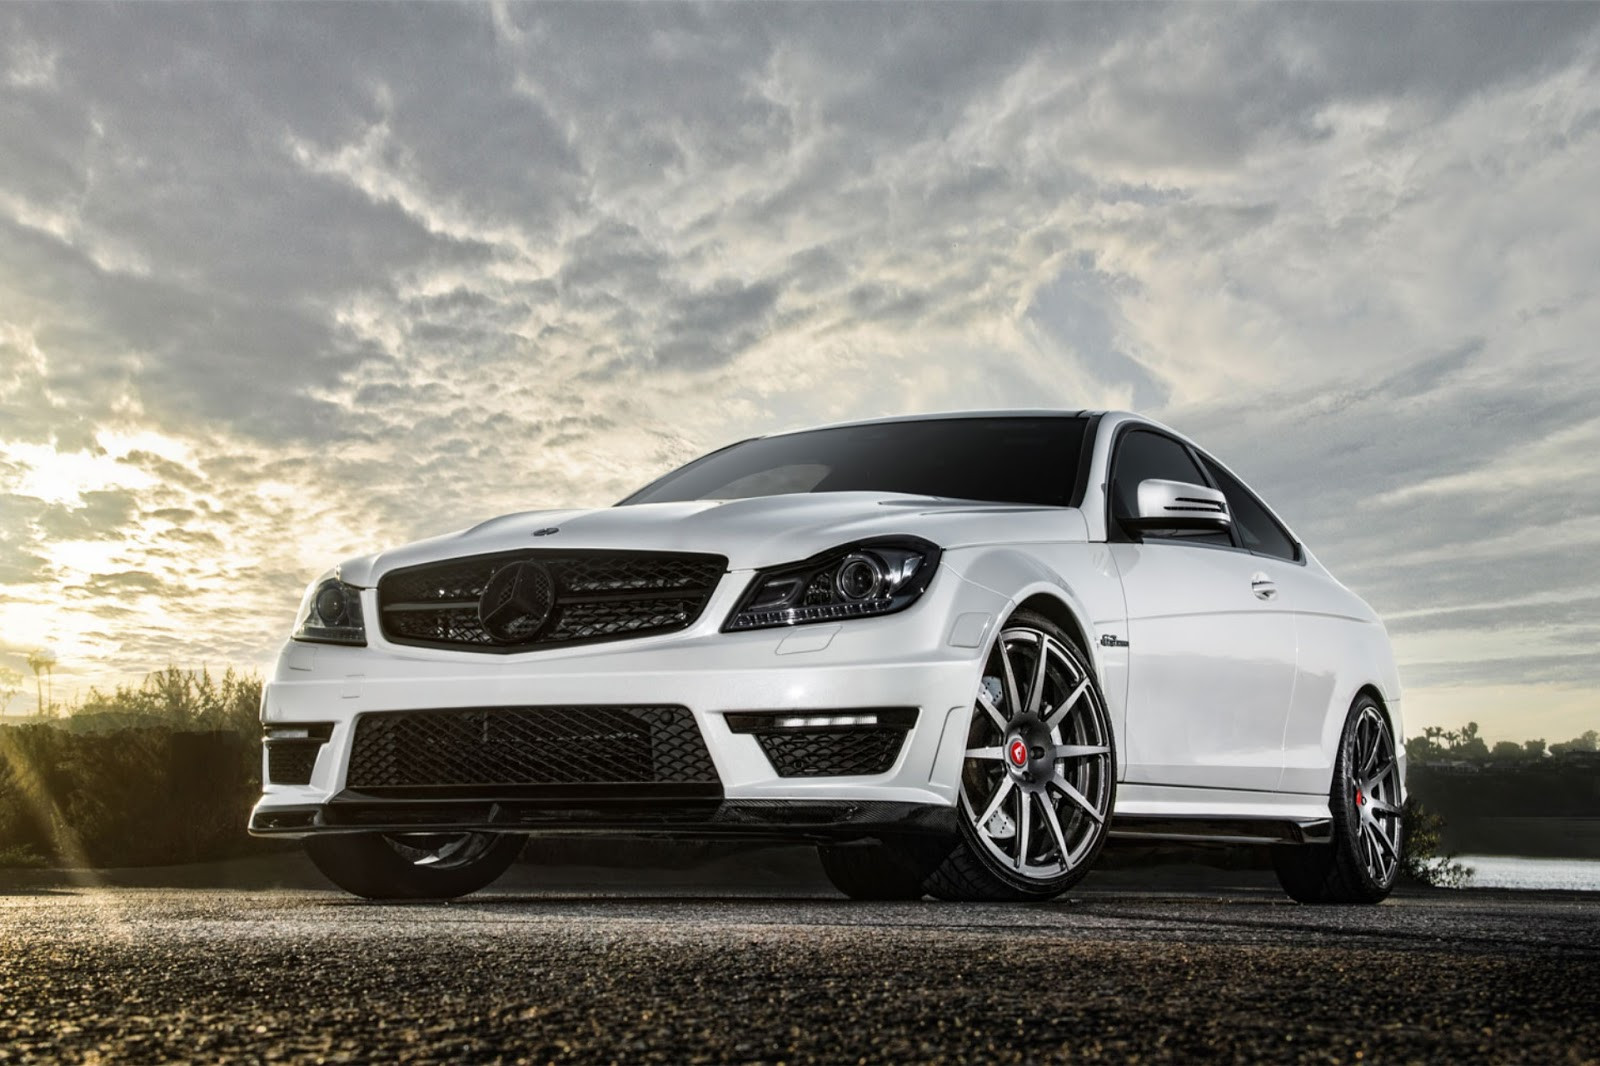 Mercedes Benz C63 HD Wallpapers Mercedes Benz C63 HD Wallpapers 1600x1066